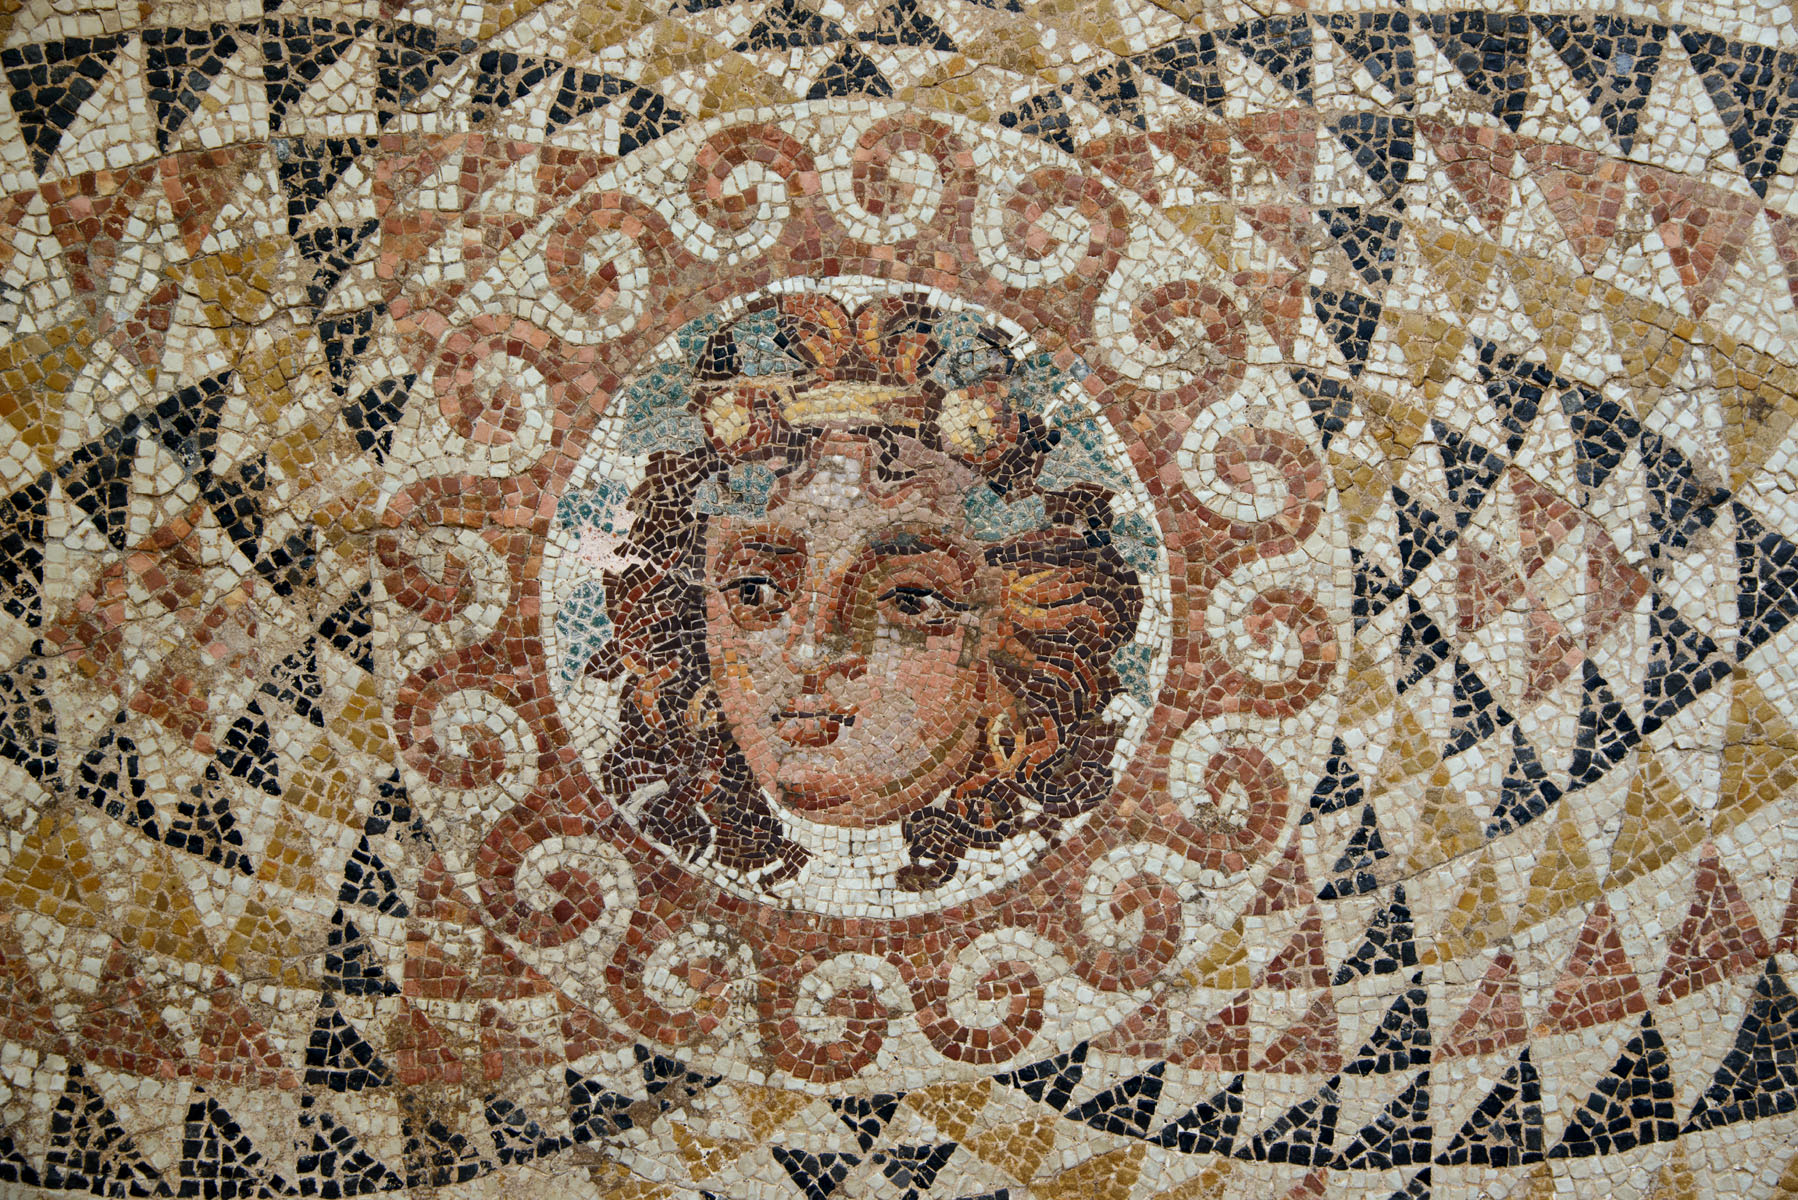 Mosaic floor with Dionysus' head. From a Roman villa. Second half of the 2nd—3rd cent. CE. Inv. No. A609 / MOS 25-3. Corinth, Archaeological Museum of Ancient Corinth